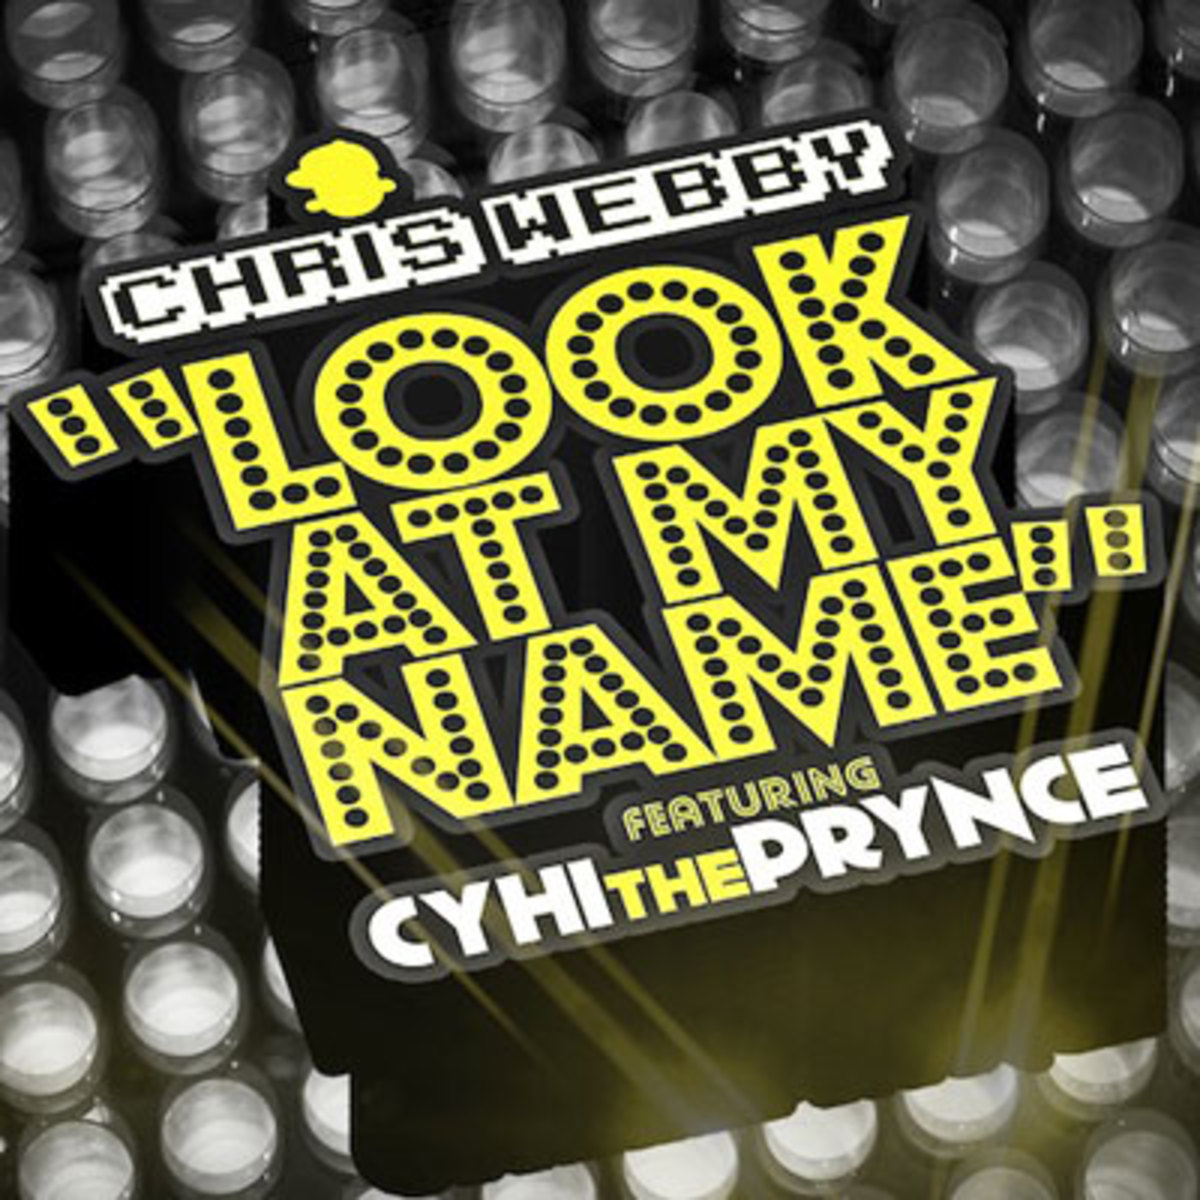 chriswebby-lookatmyname.jpg